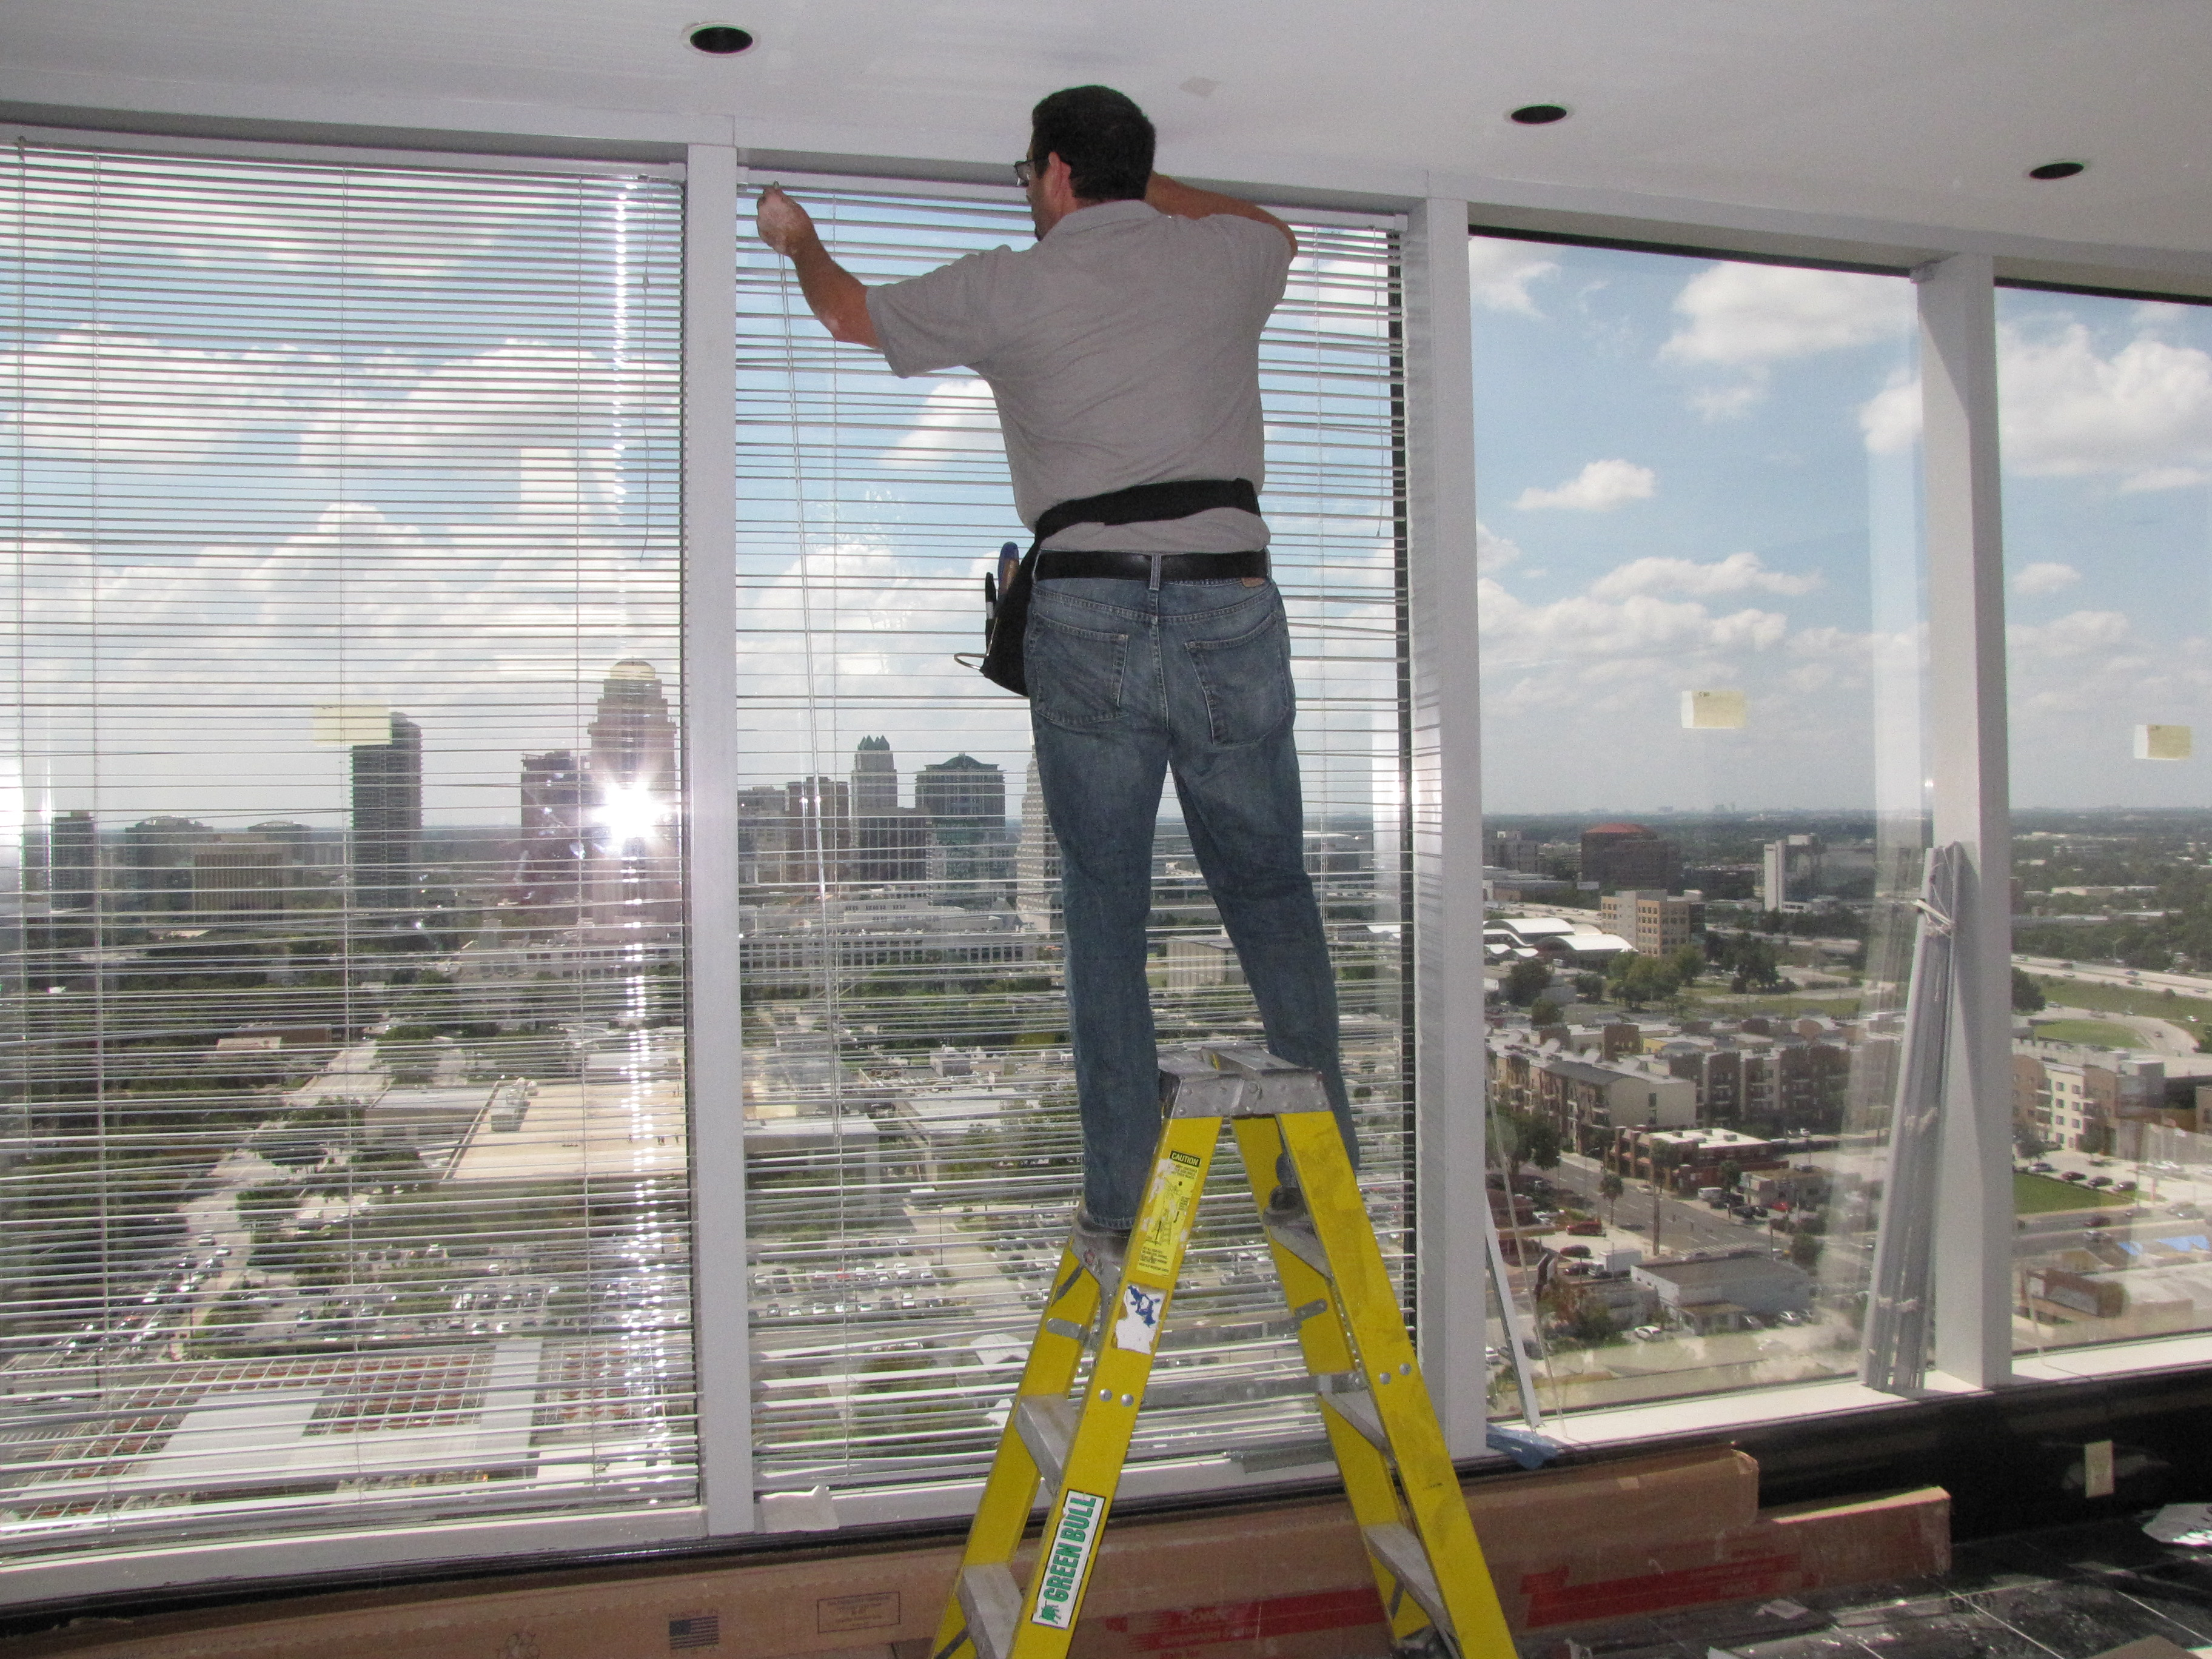 Commercial Blind Cleaning Wash Rite Orlando S Premier